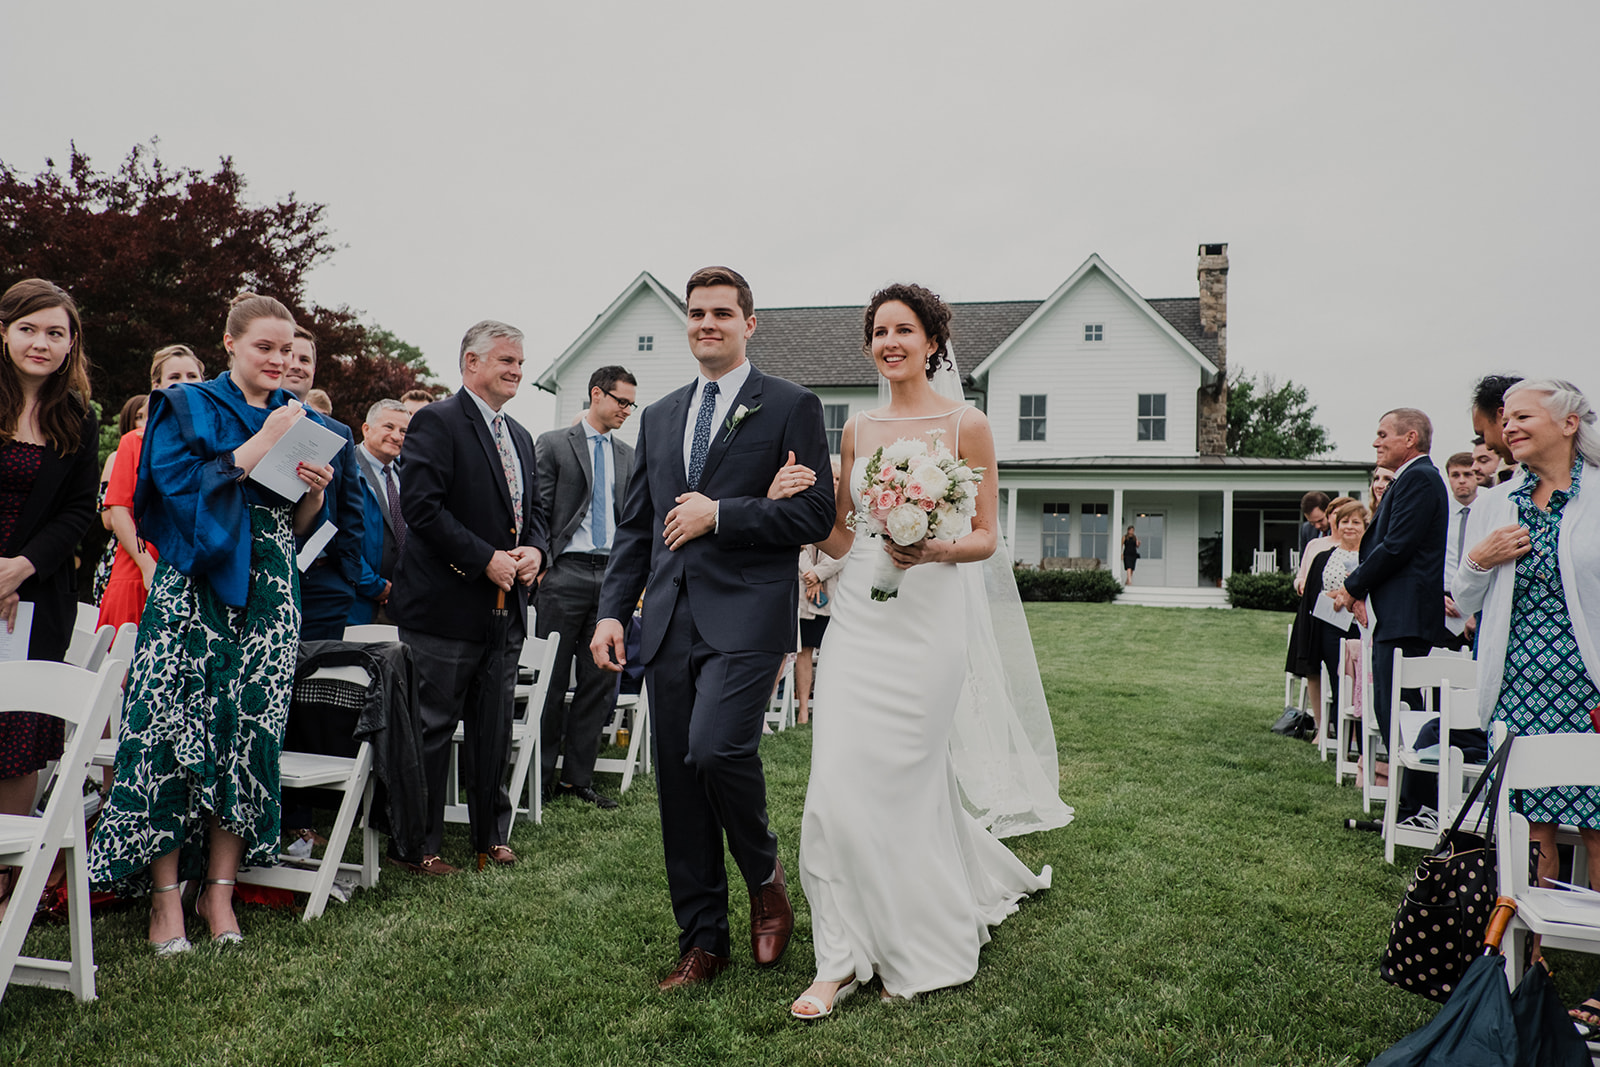 A bride is escorted by her brother down the aisle of her outdoor wedding at Blue Hill Farm in Waterford, VA.